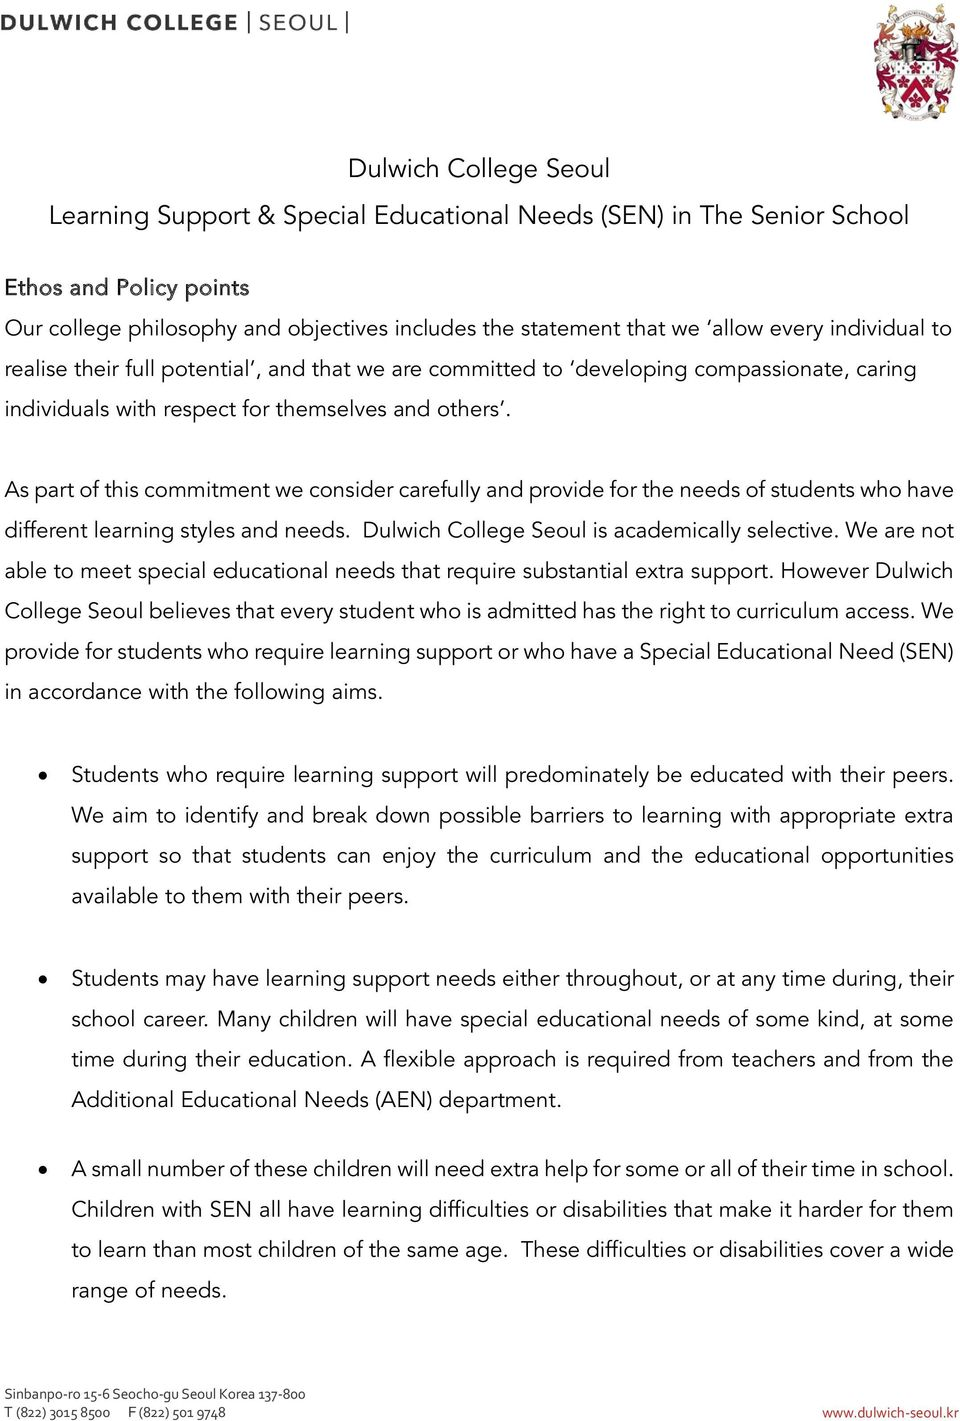 As part of this commitment we consider carefully and provide for the needs of students who have different learning styles and needs. Dulwich College Seoul is academically selective.